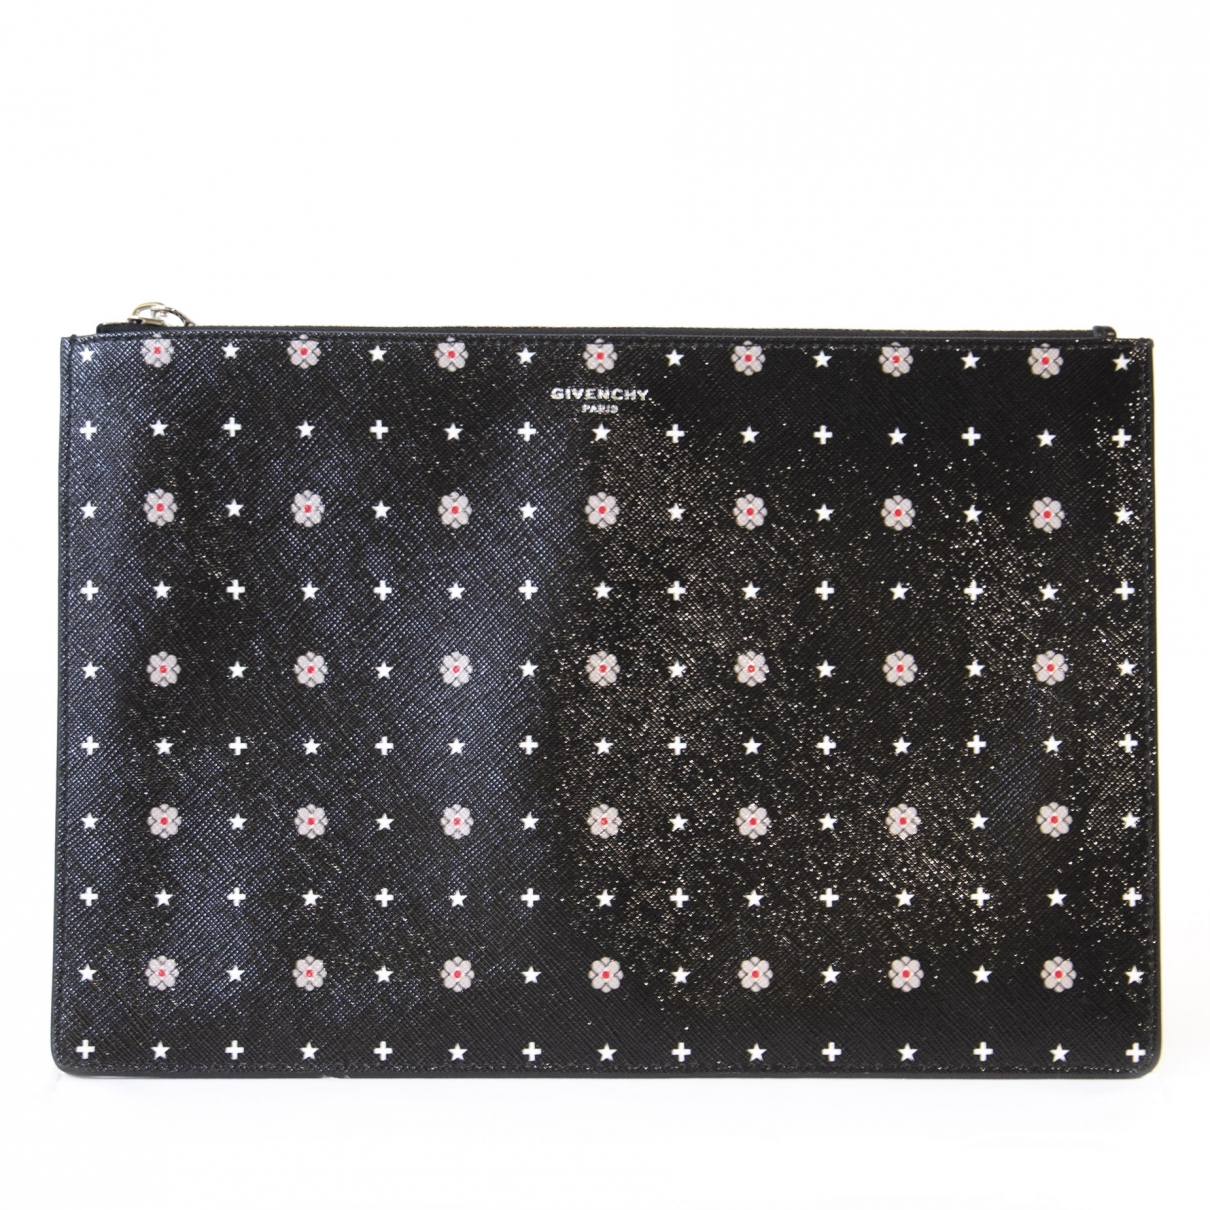 Givenchy \N Multicolour Leather Clutch bag for Women \N